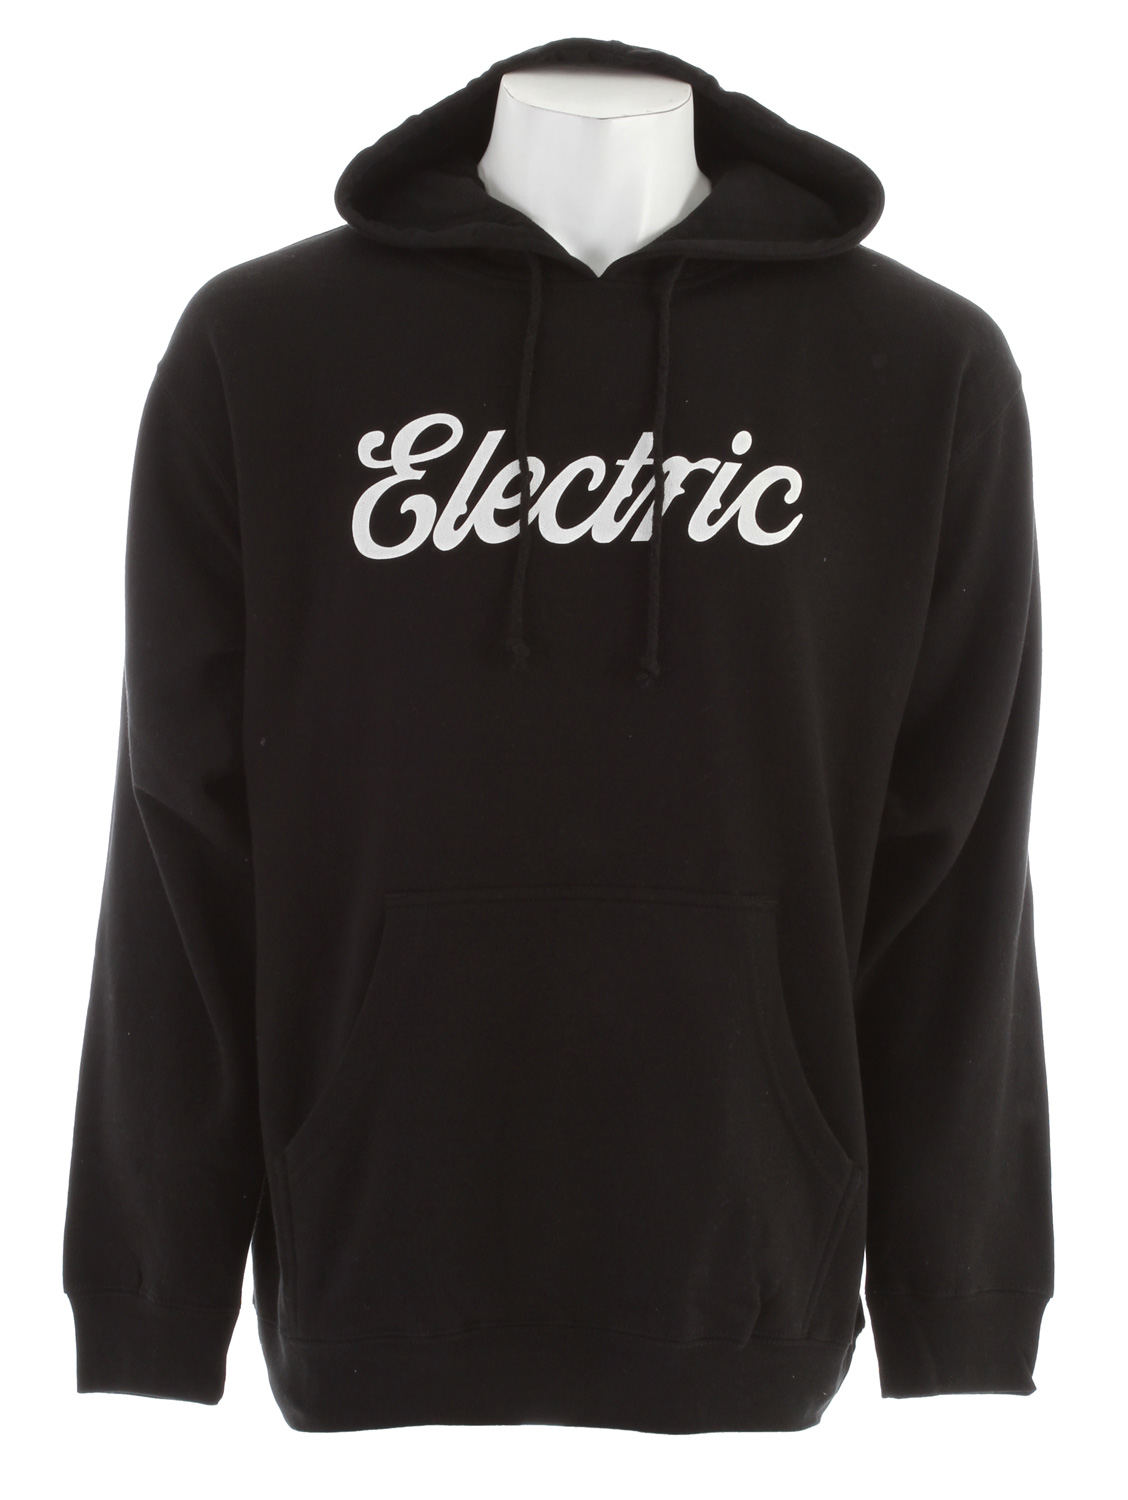 Key Features of the Electric Cursive Basic Hoodie: Men's Pull Over Fleece With Screenprint Basic Fit 80% Cotton 20% Polyester - $27.95